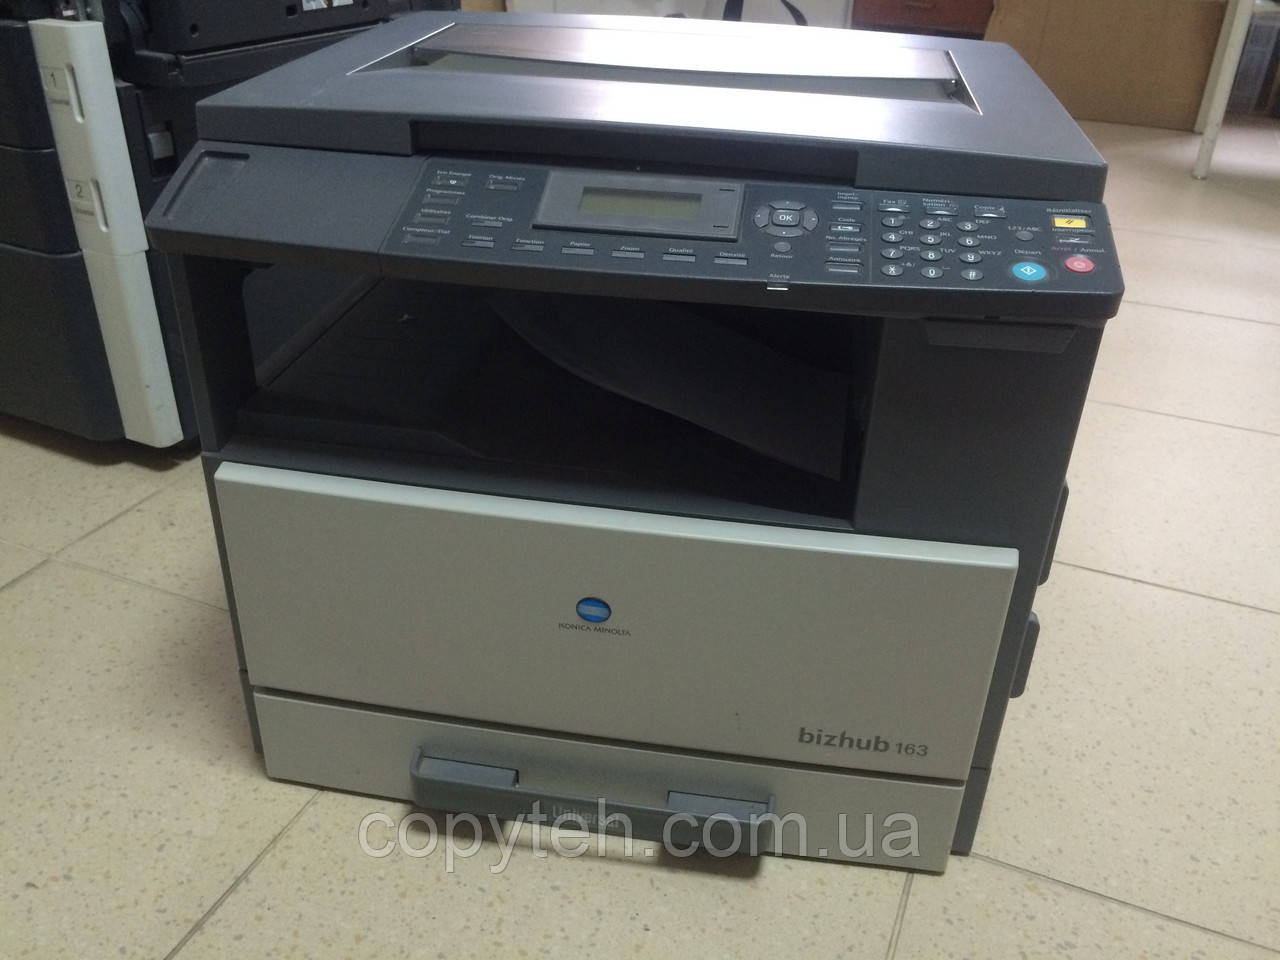 KONICA MINOLTA BIZHUB 163 PRINTER TELECHARGER PILOTE